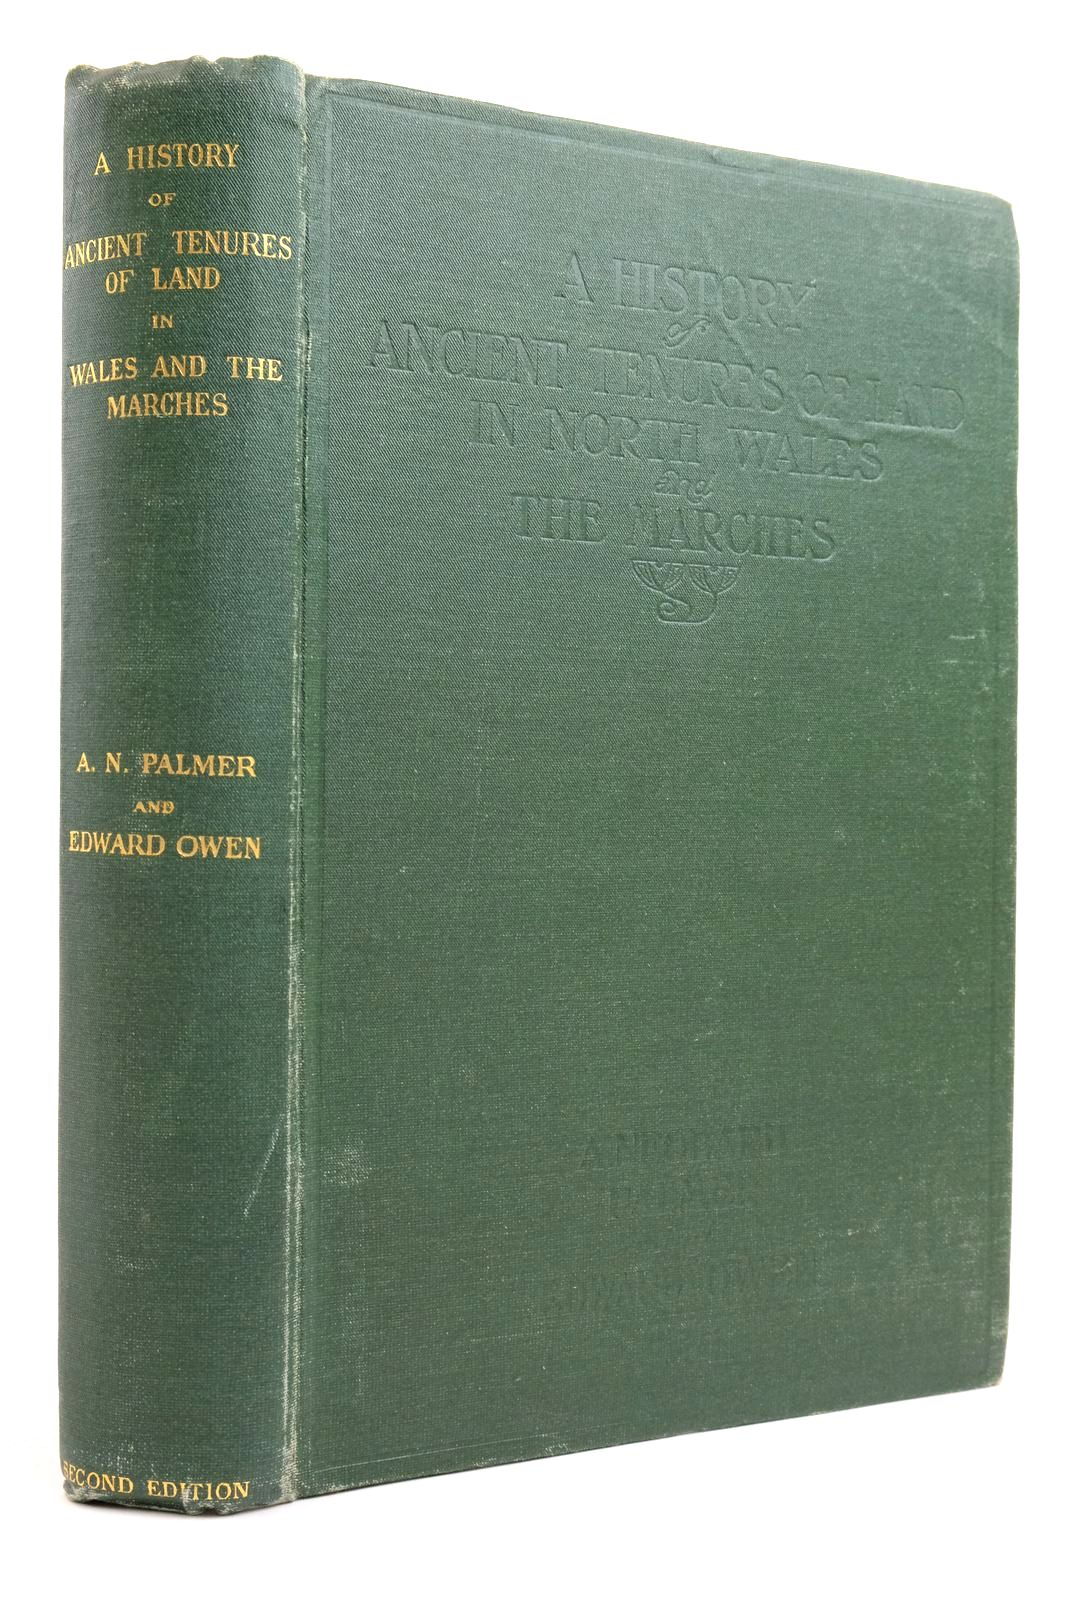 Photo of A HISTORY OF ANCIENT TENURES OF LAND IN NORTH WALES AND THE MARCHES- Stock Number: 2135439